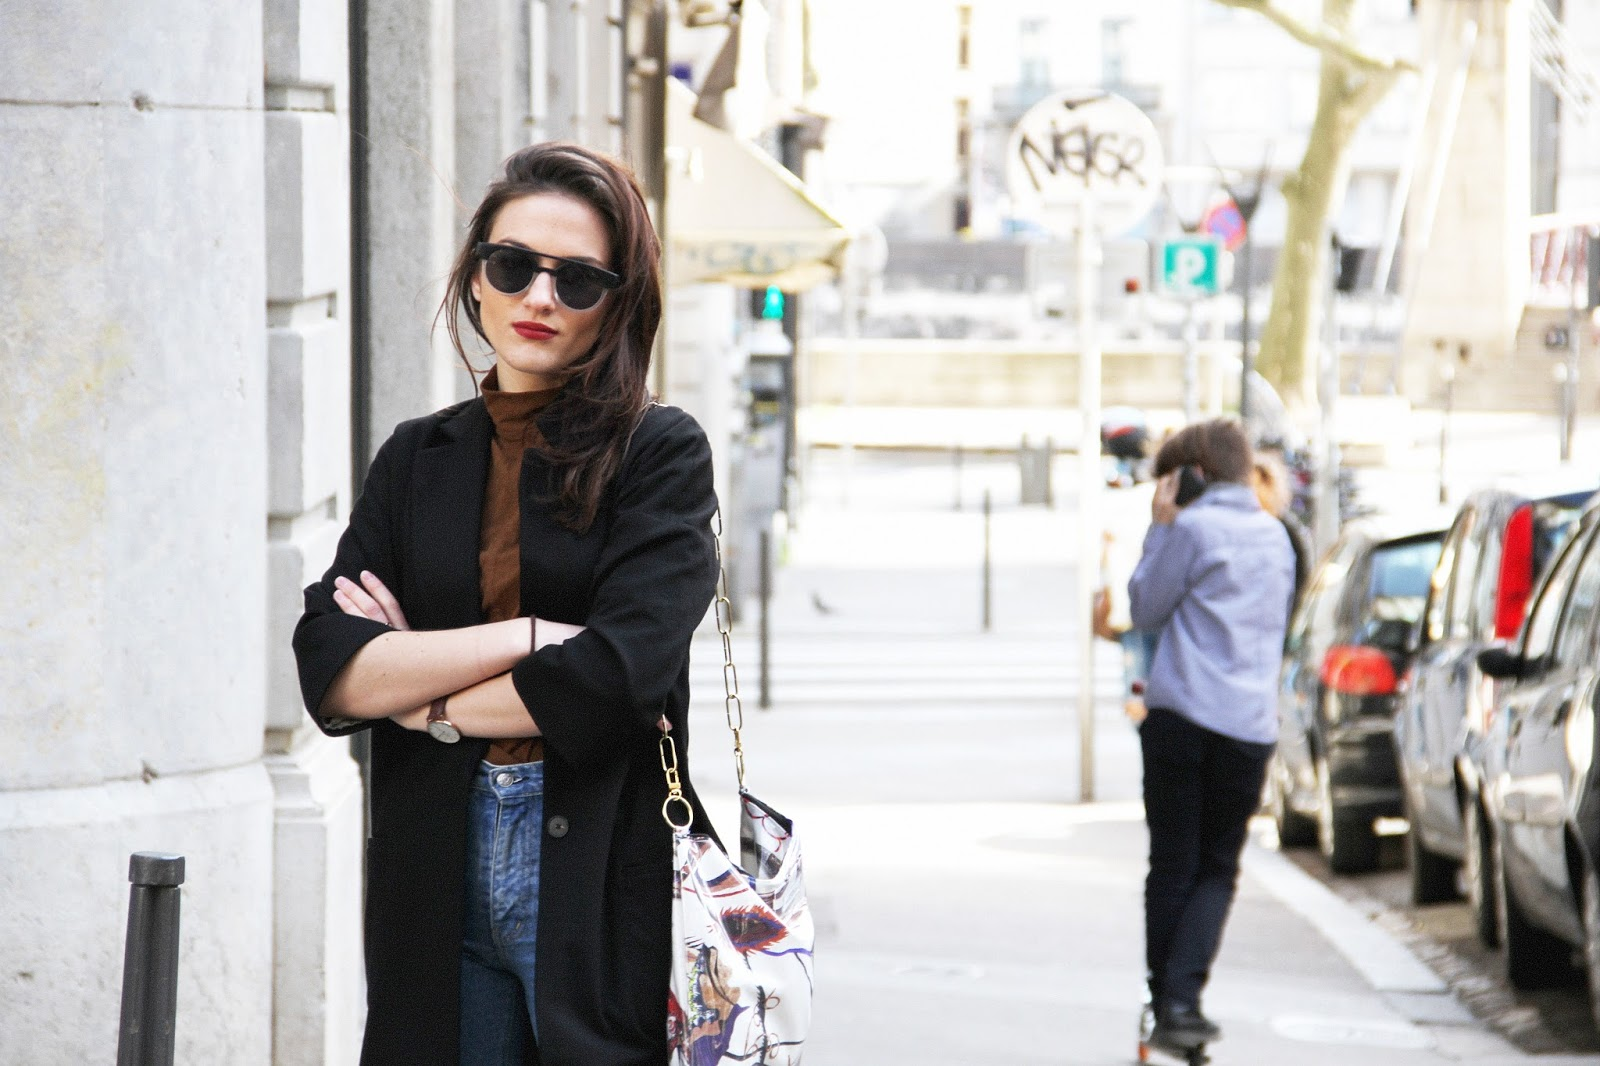 Outfit of the day #63 x les beaux jours